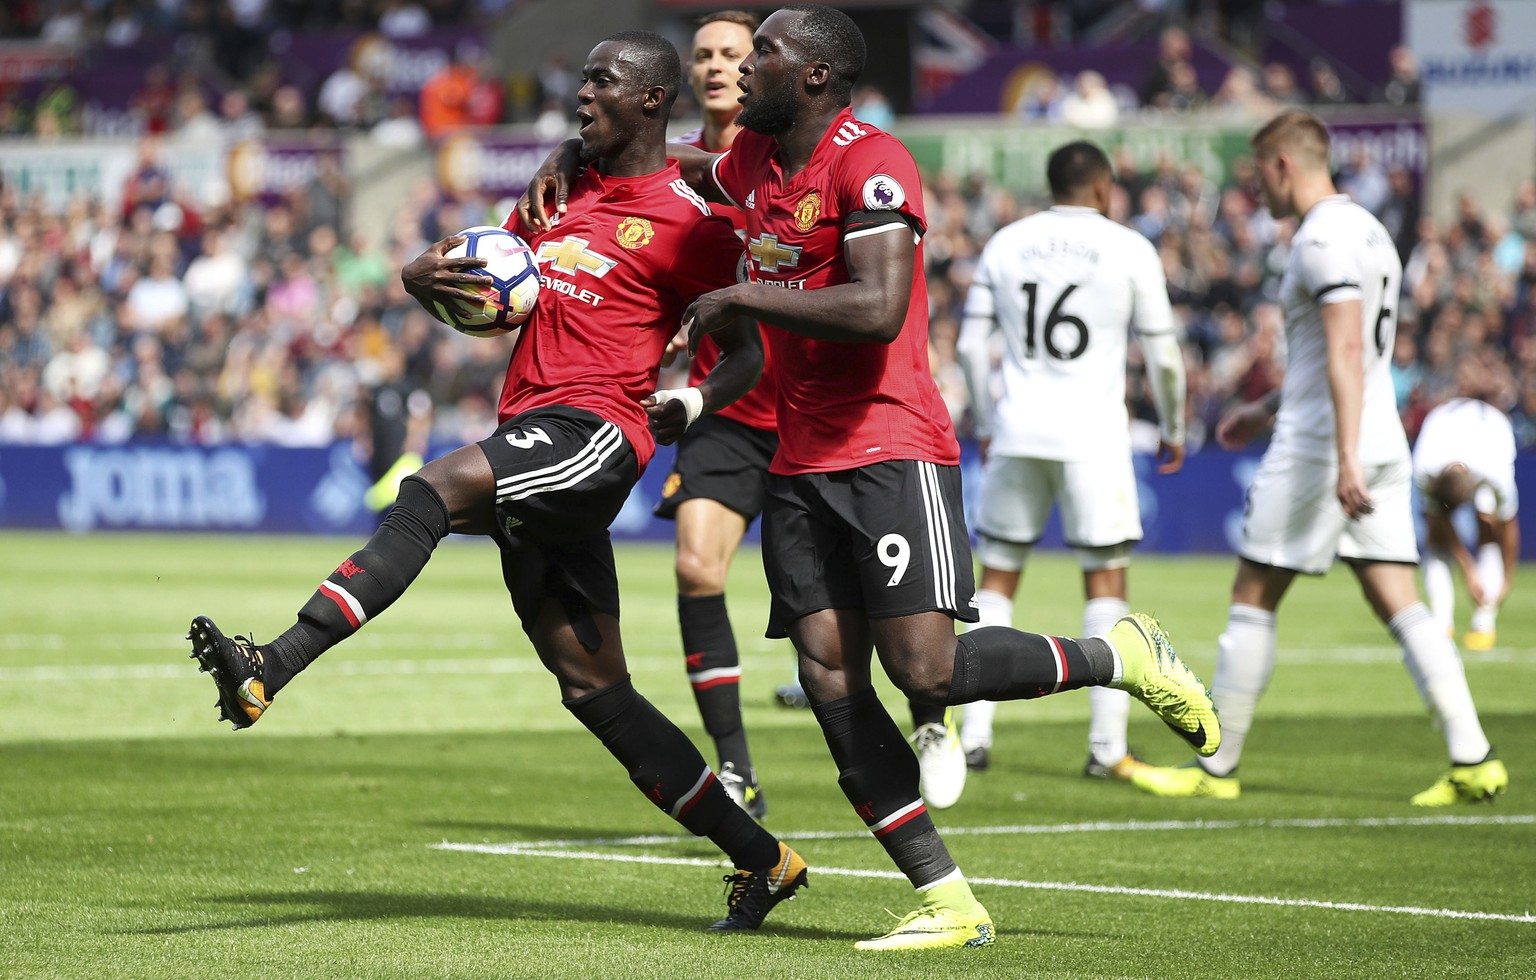 Manchester United's Eric Bailly, left, celebrates with teammate Romelu Lukaku after scoring his side's first goal during their English Premier League soccer match at the Liberty Stadium, Swansea, Wales, Saturday, Aug. 19, 2017. (Nick Potts/PA via AP)